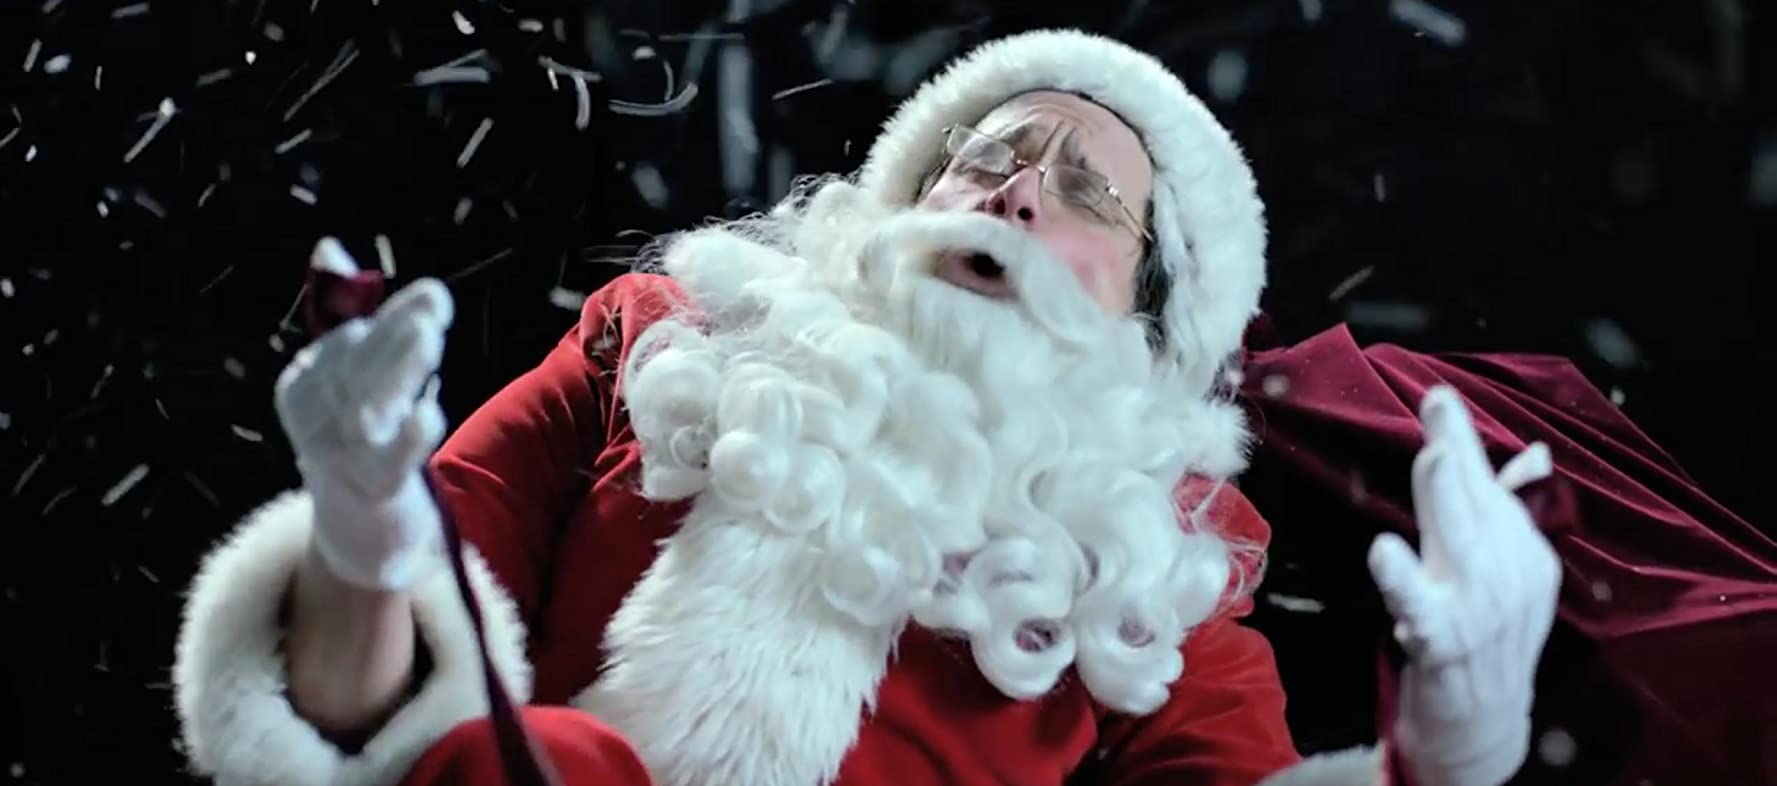 Drunk History Christmas 2011.Drunk History Christmas Featuring Ryan Gosling Jim Carrey